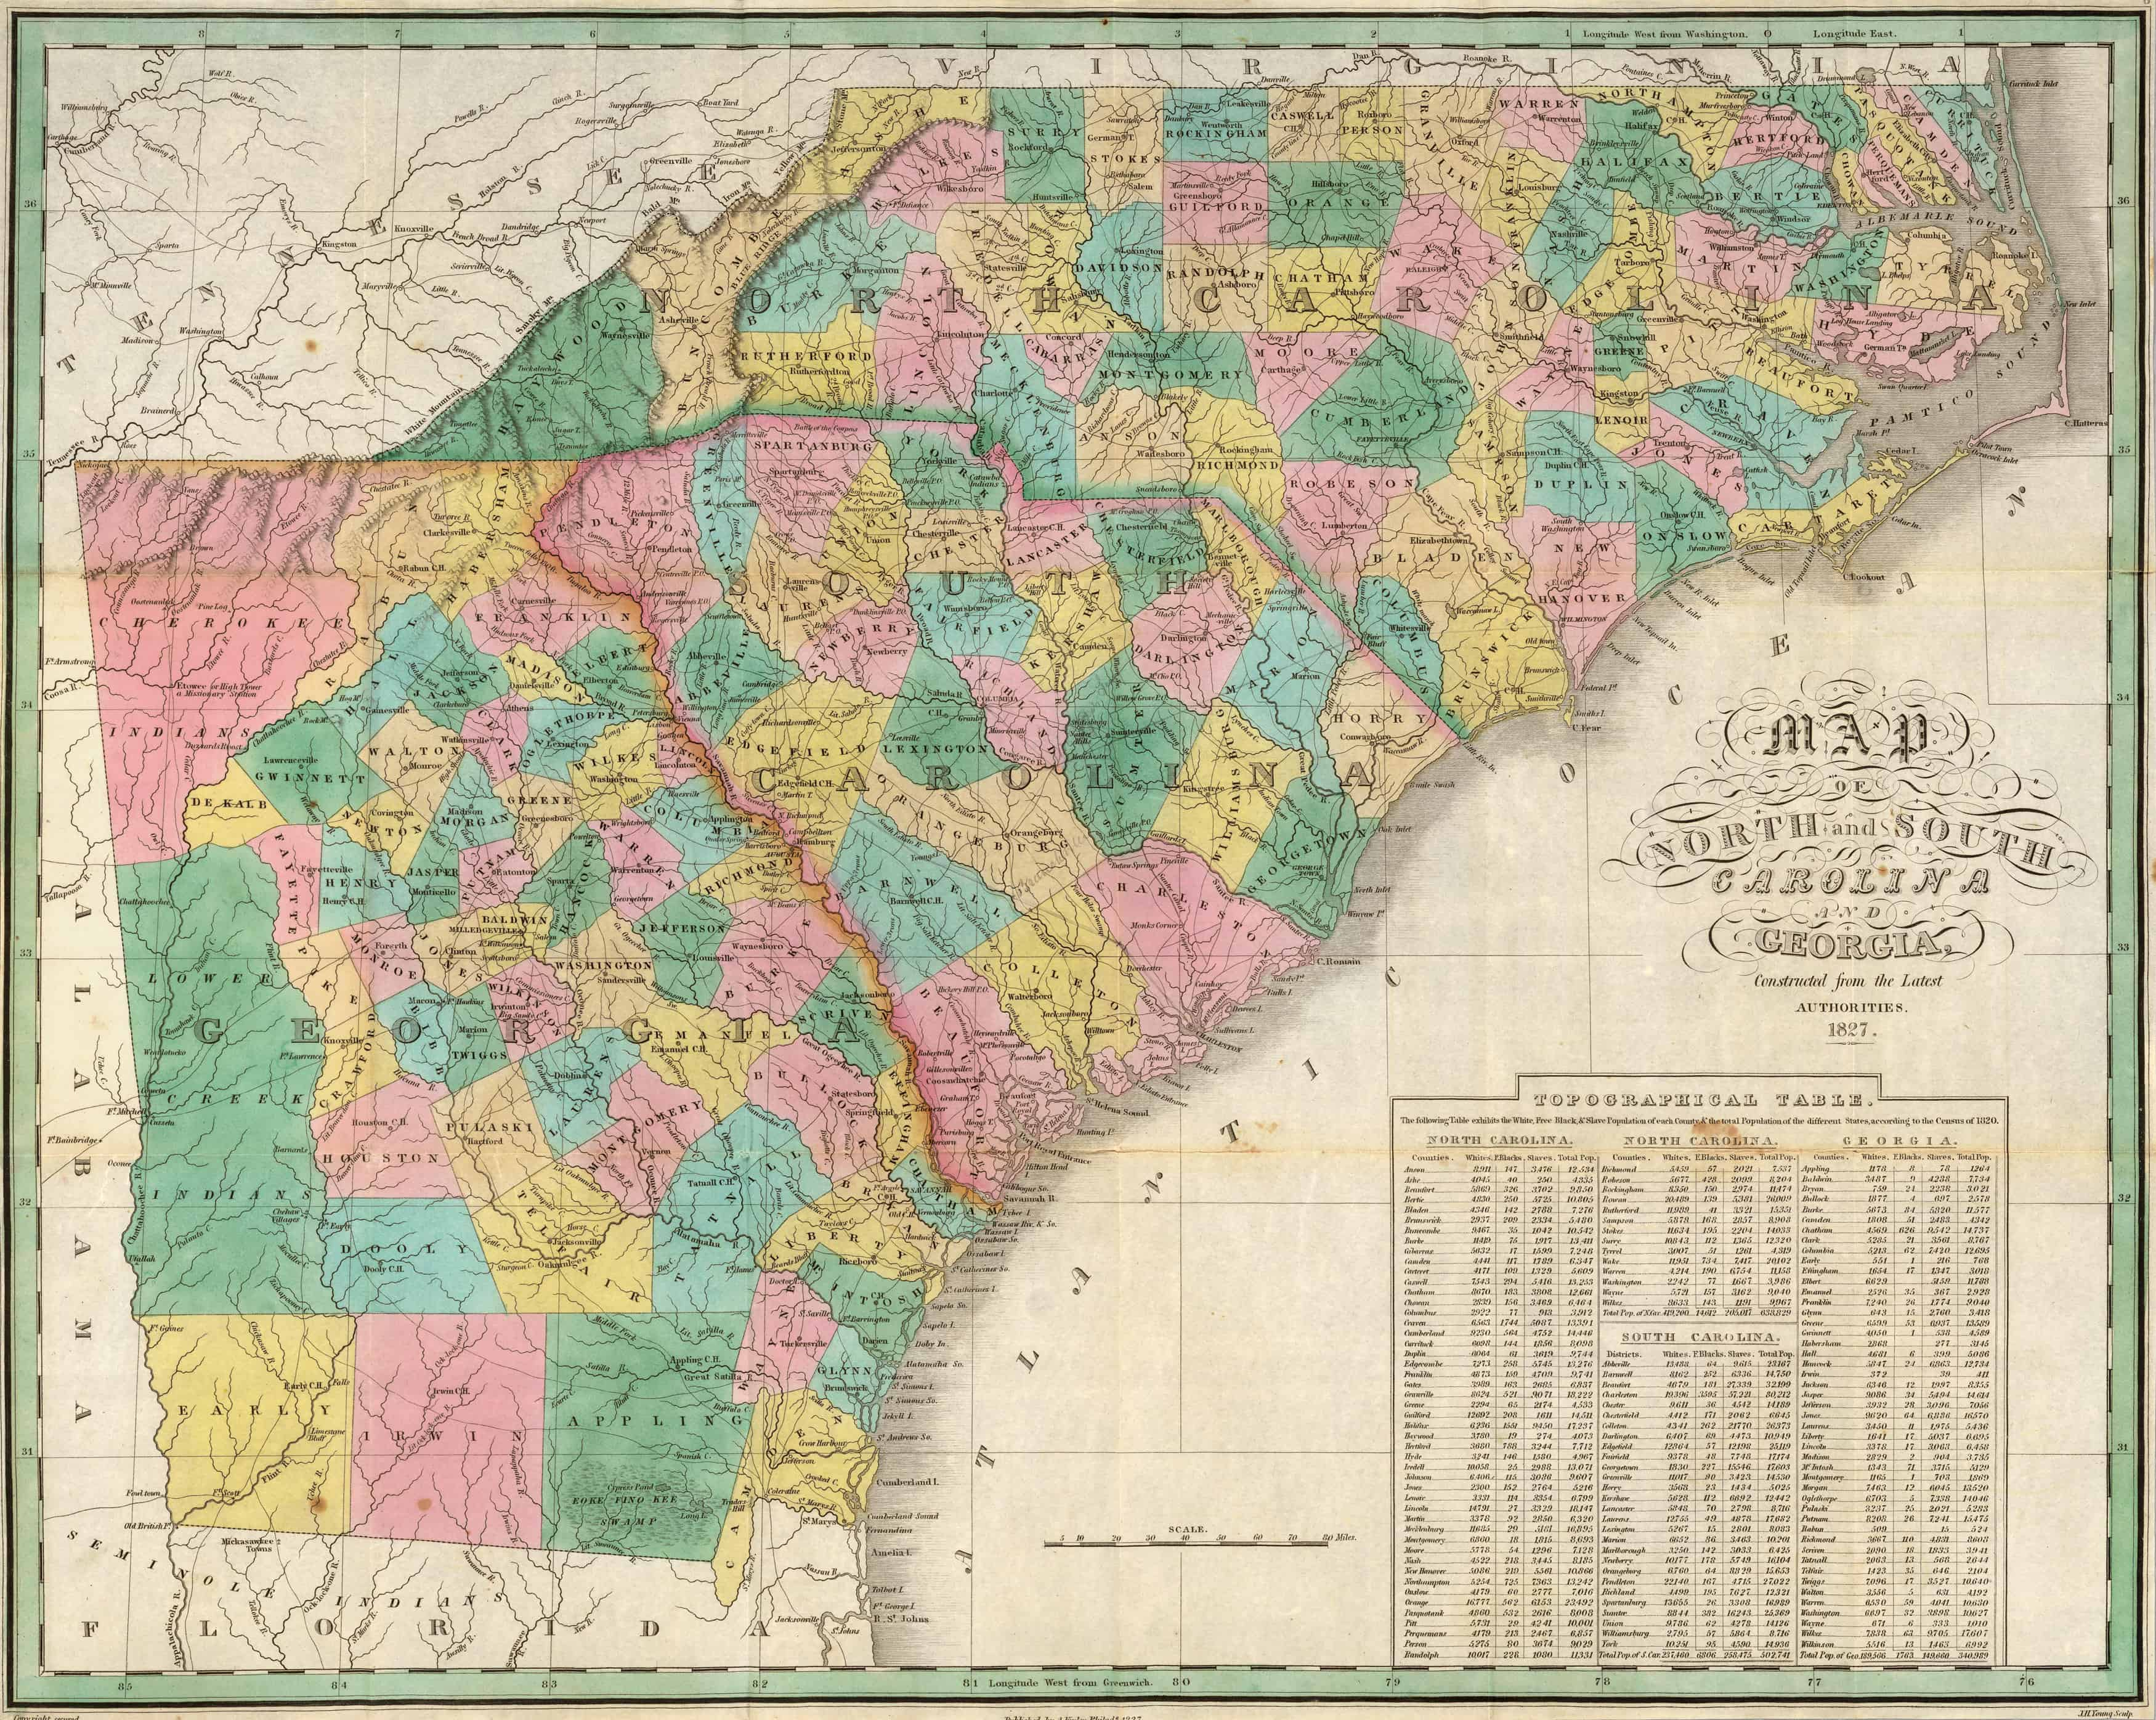 Old Historical City, County and State Maps of Georgia